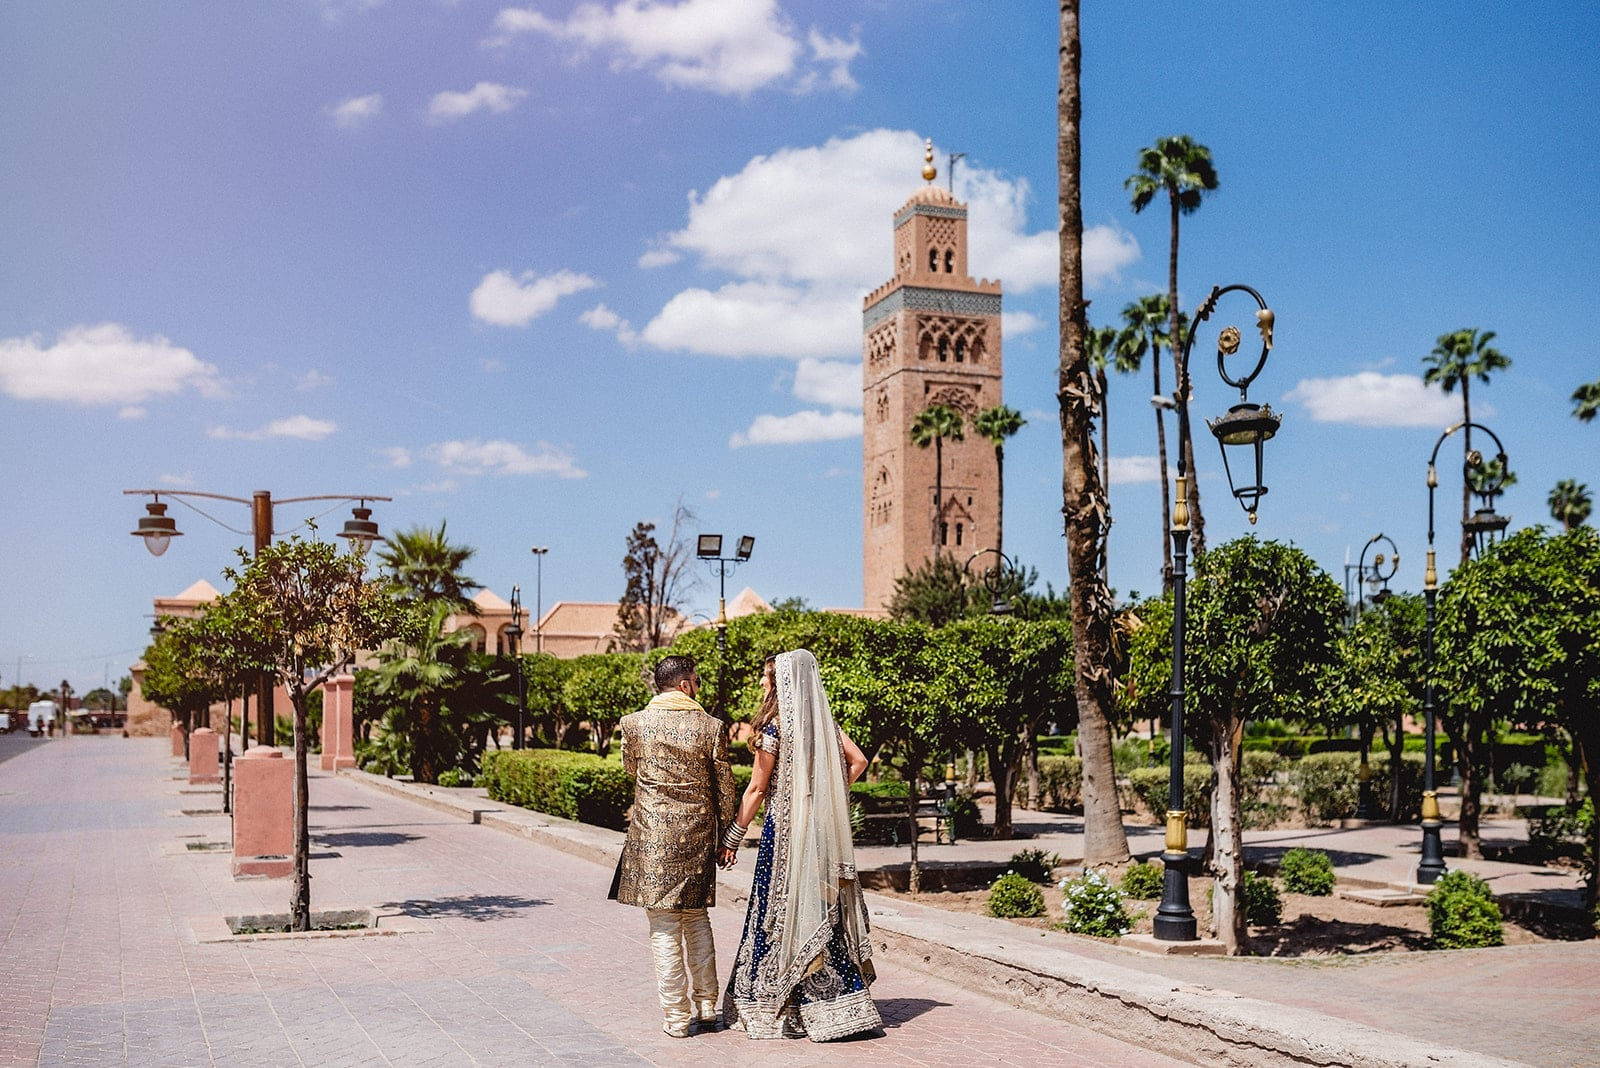 Moroccan couple walking towards the Koutoubia Mosque in Marrakech